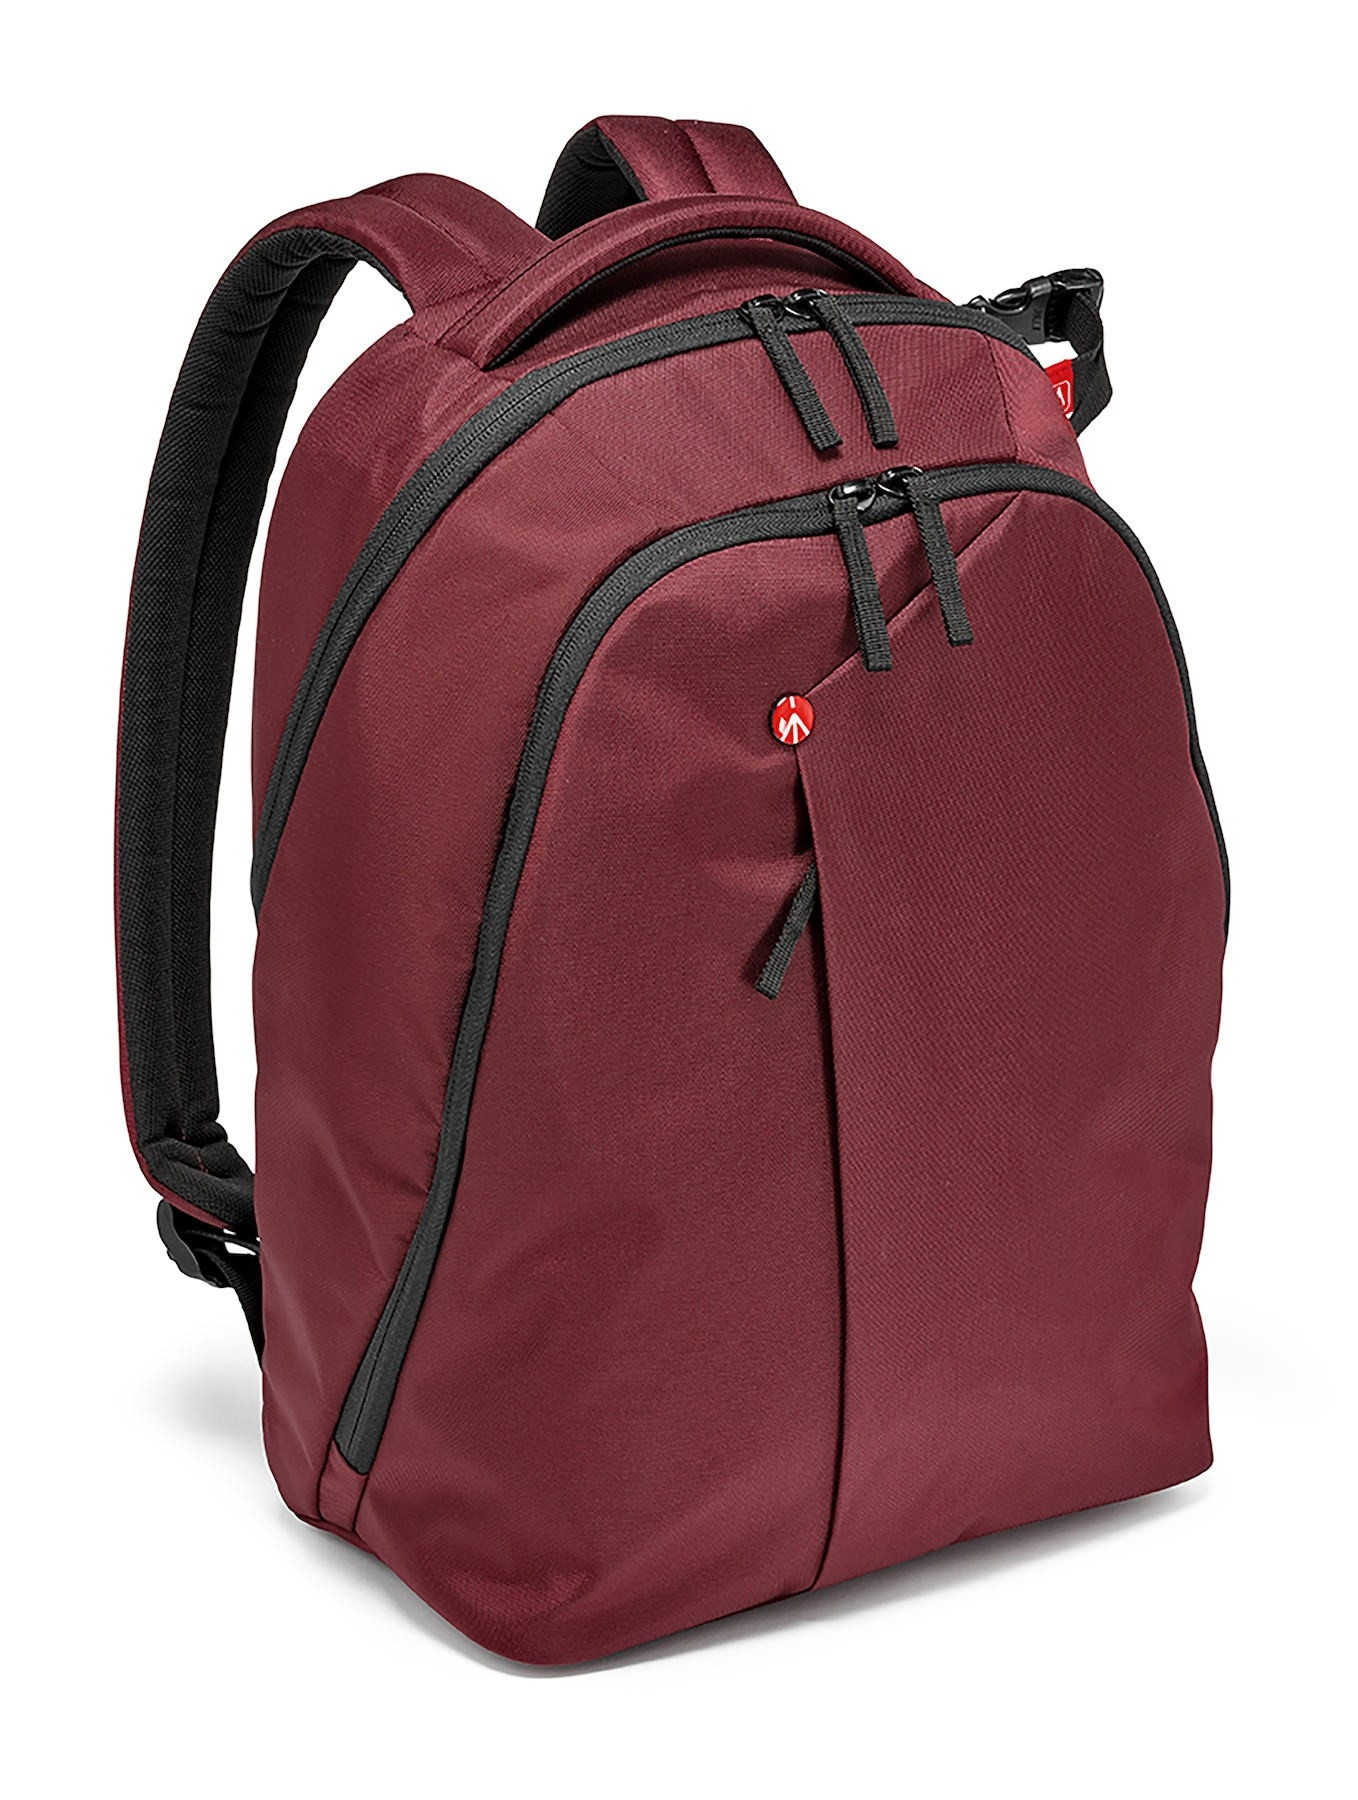 MOCHILA COLOR VINO (MB NX-BP-VBX)